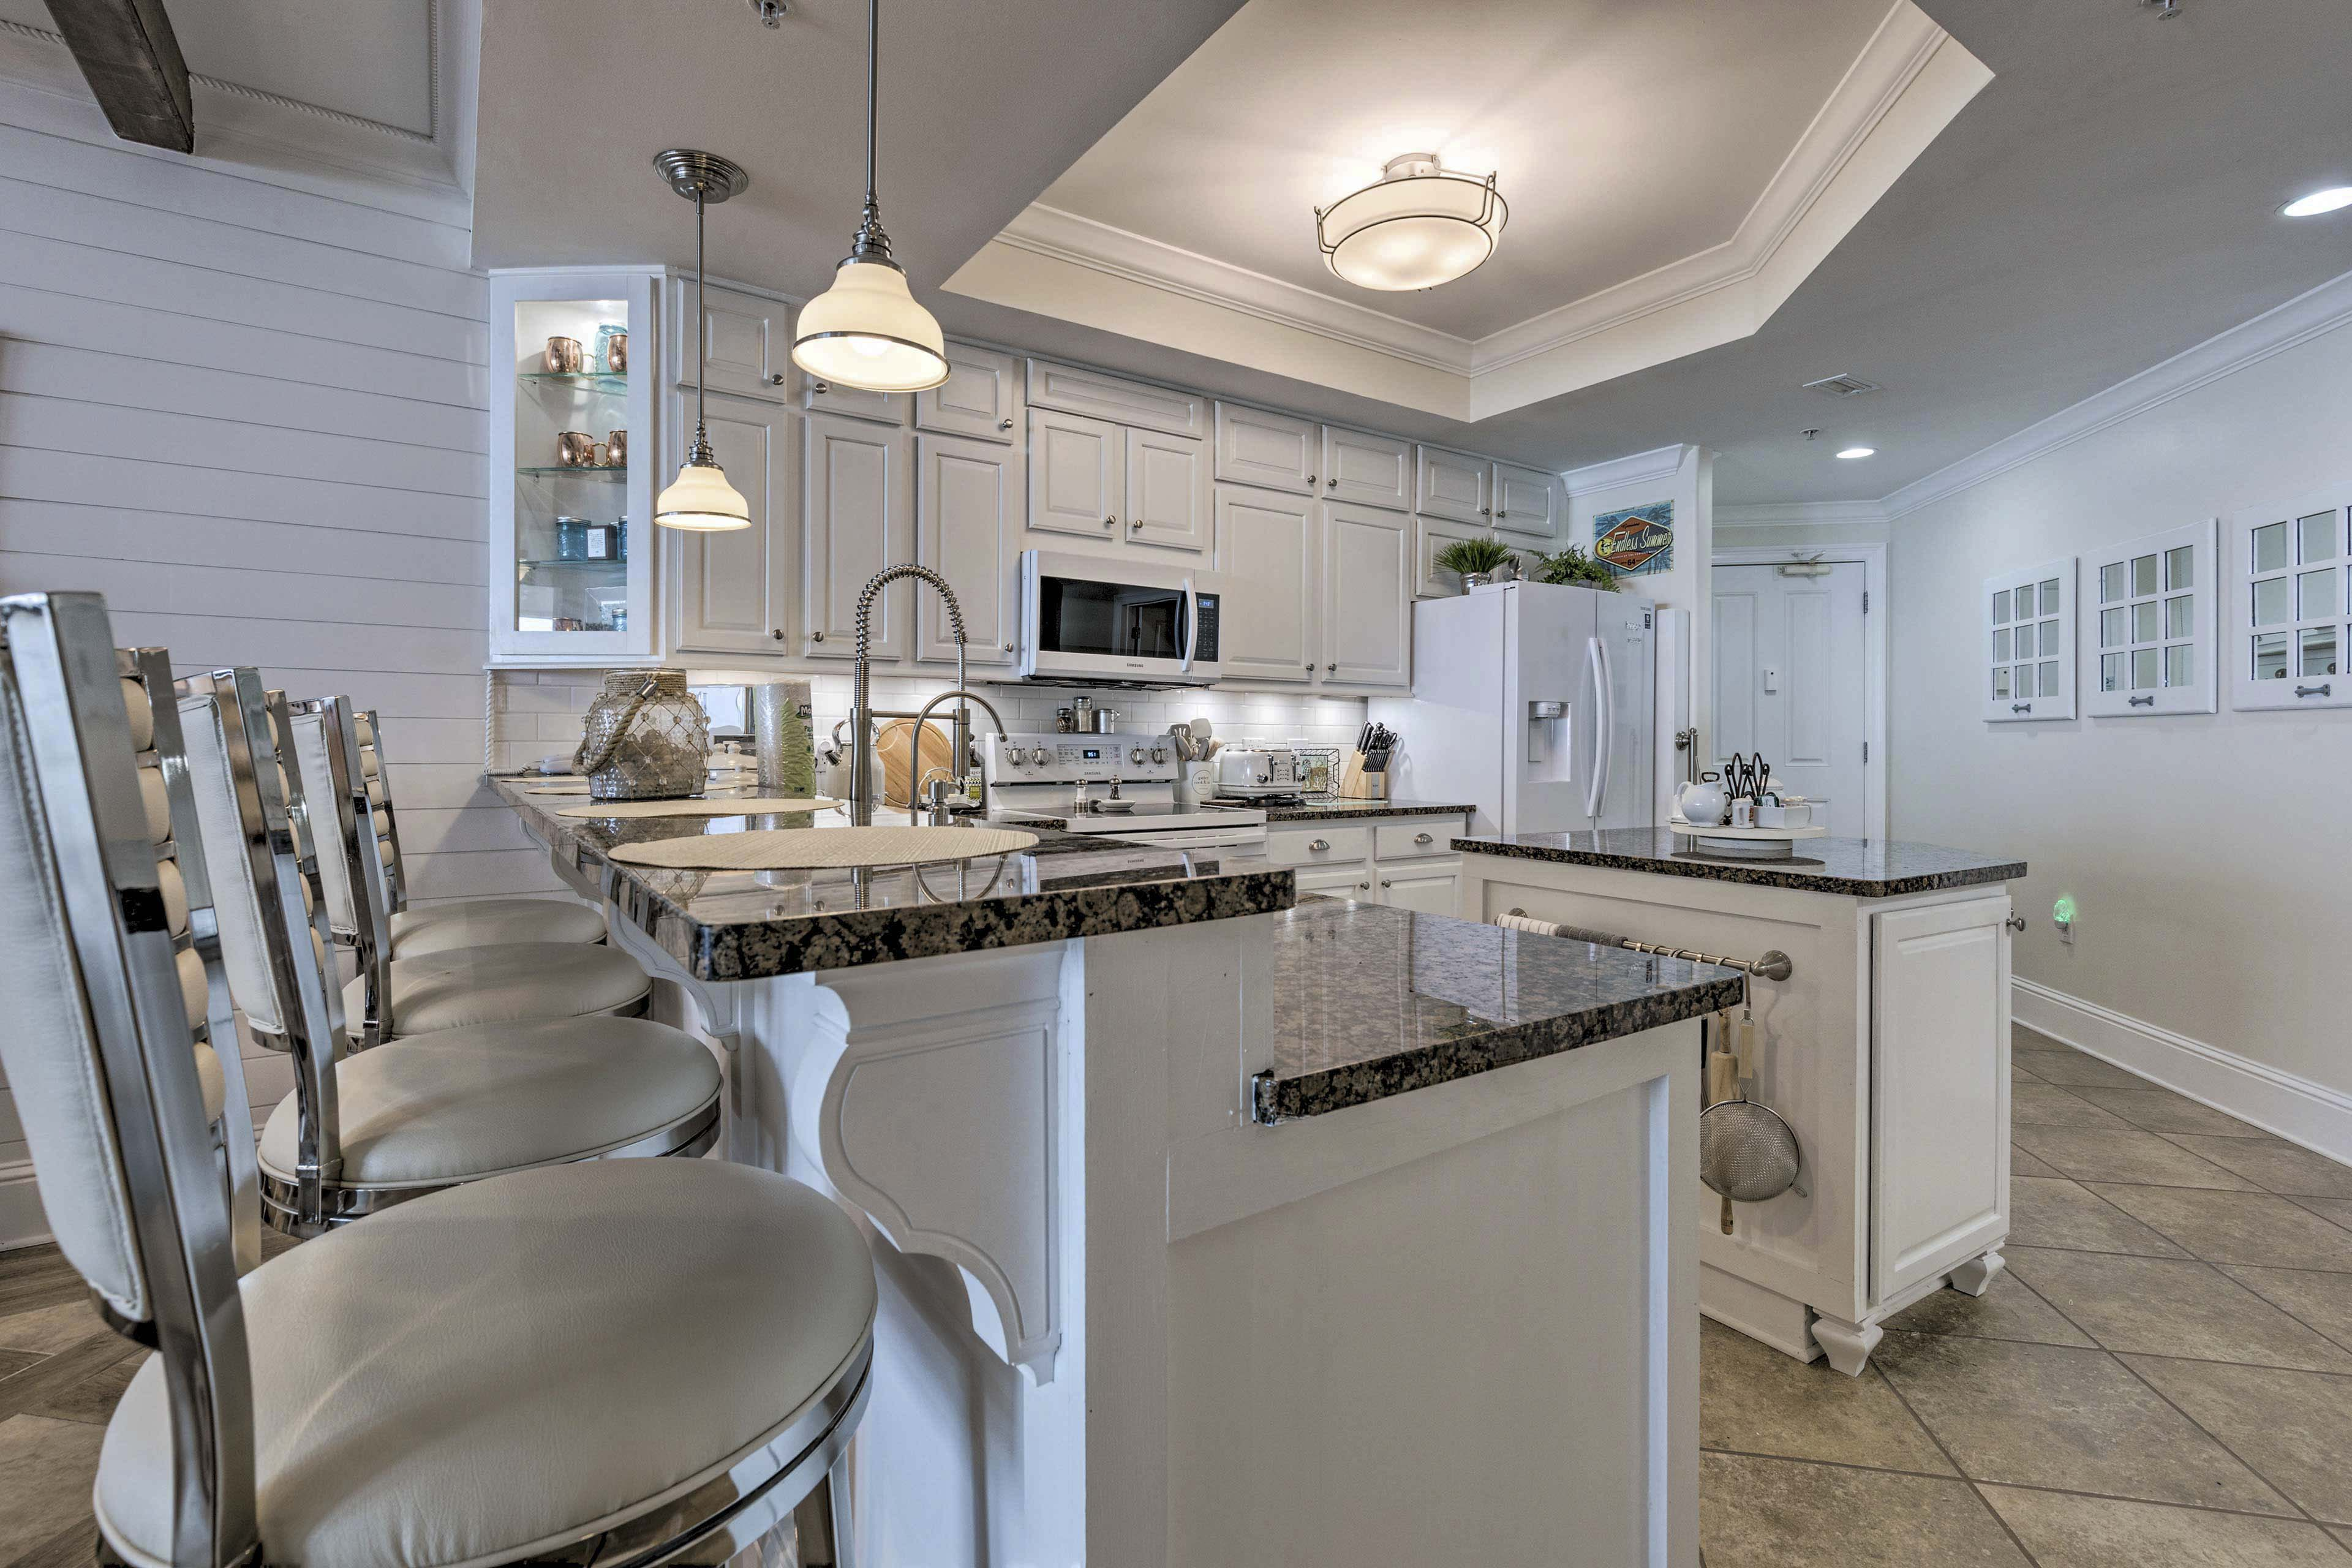 Kitchen | Fully Equipped | Breakfast Bar